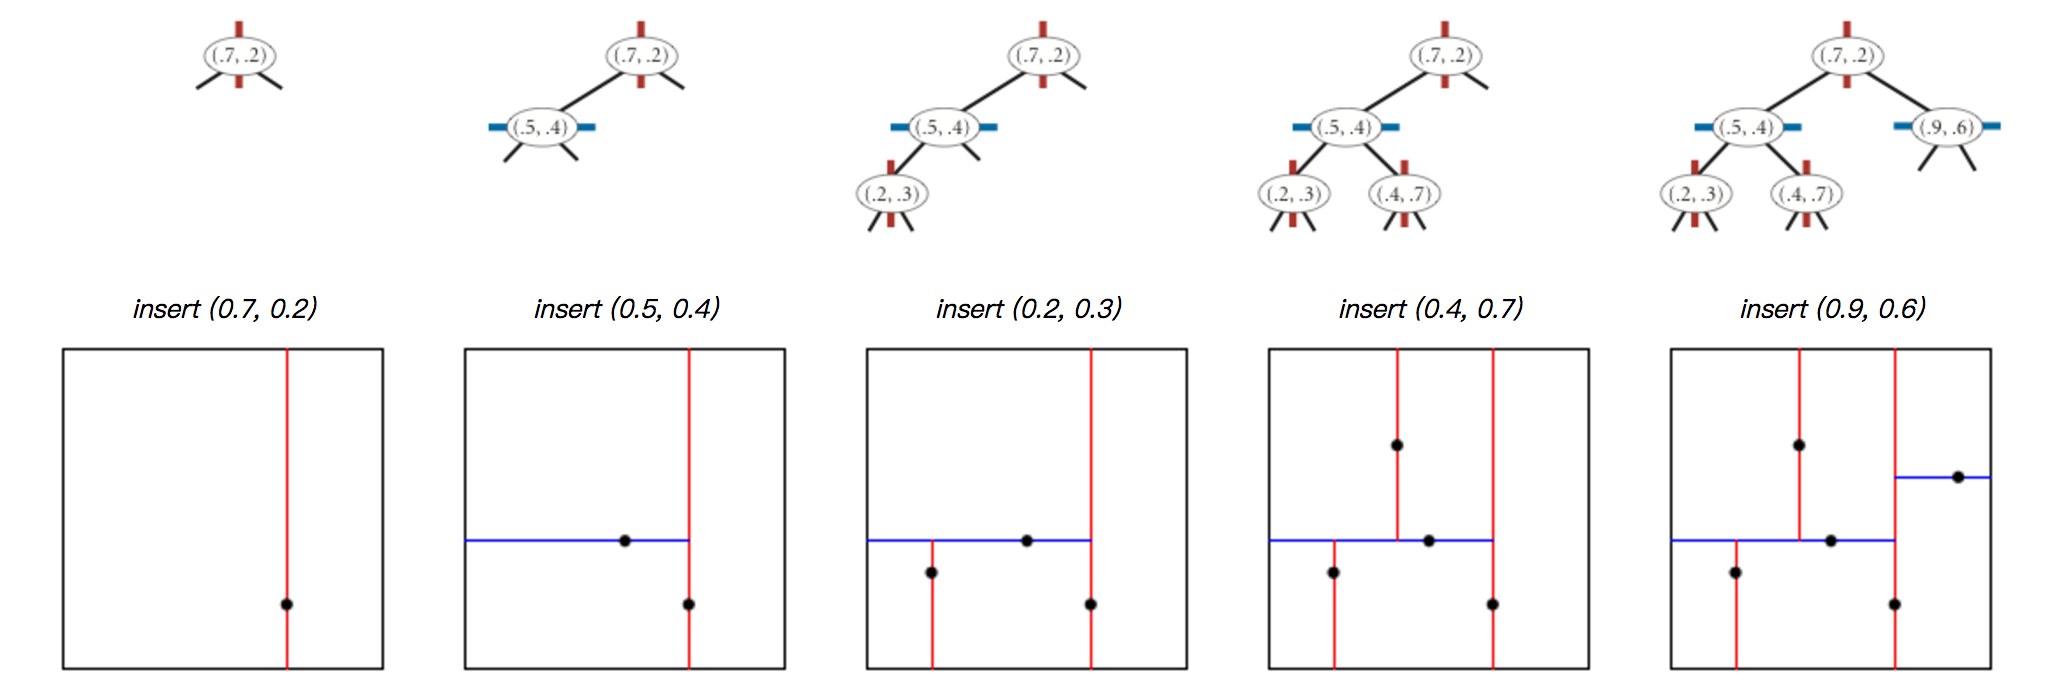 Coursera Algorithms Programming Assignment 5: Kd-Trees (98